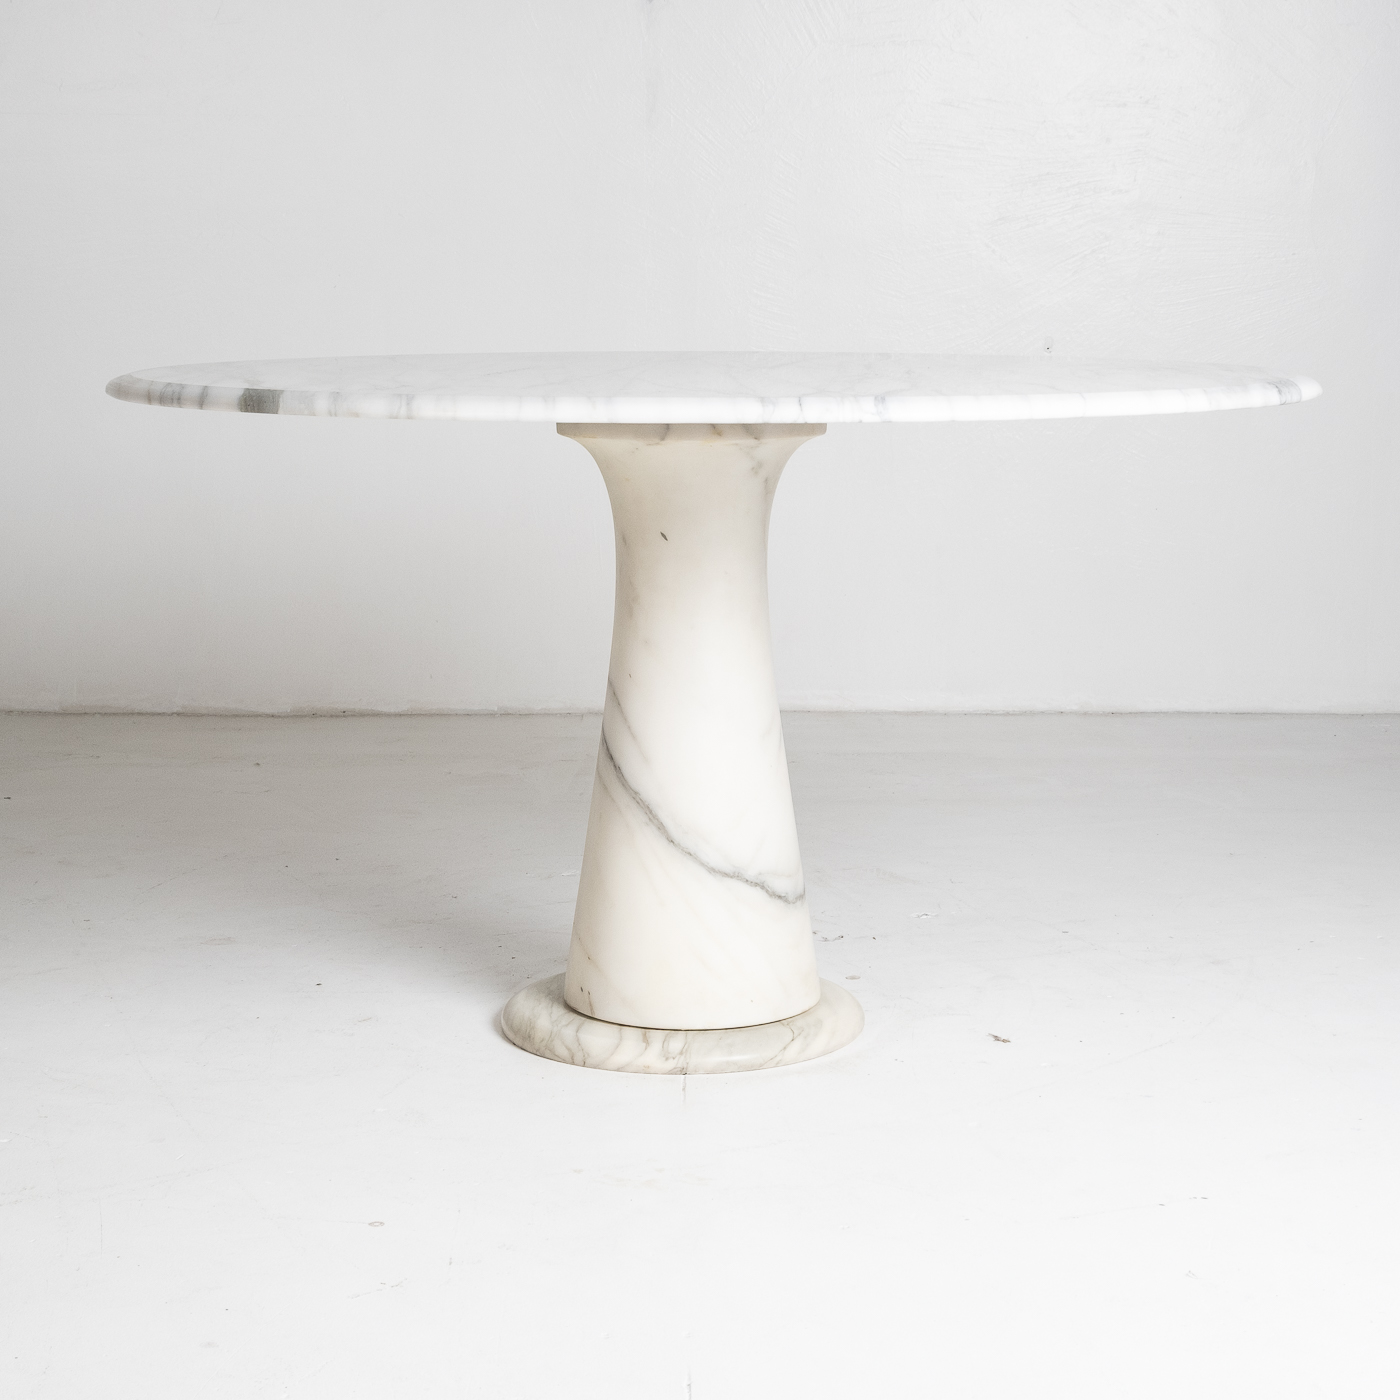 Round Marble Dining Table In The Style Of The M1 By Angelo Mangiarotti In White Calacatta Marble, 1970s, Italy 90